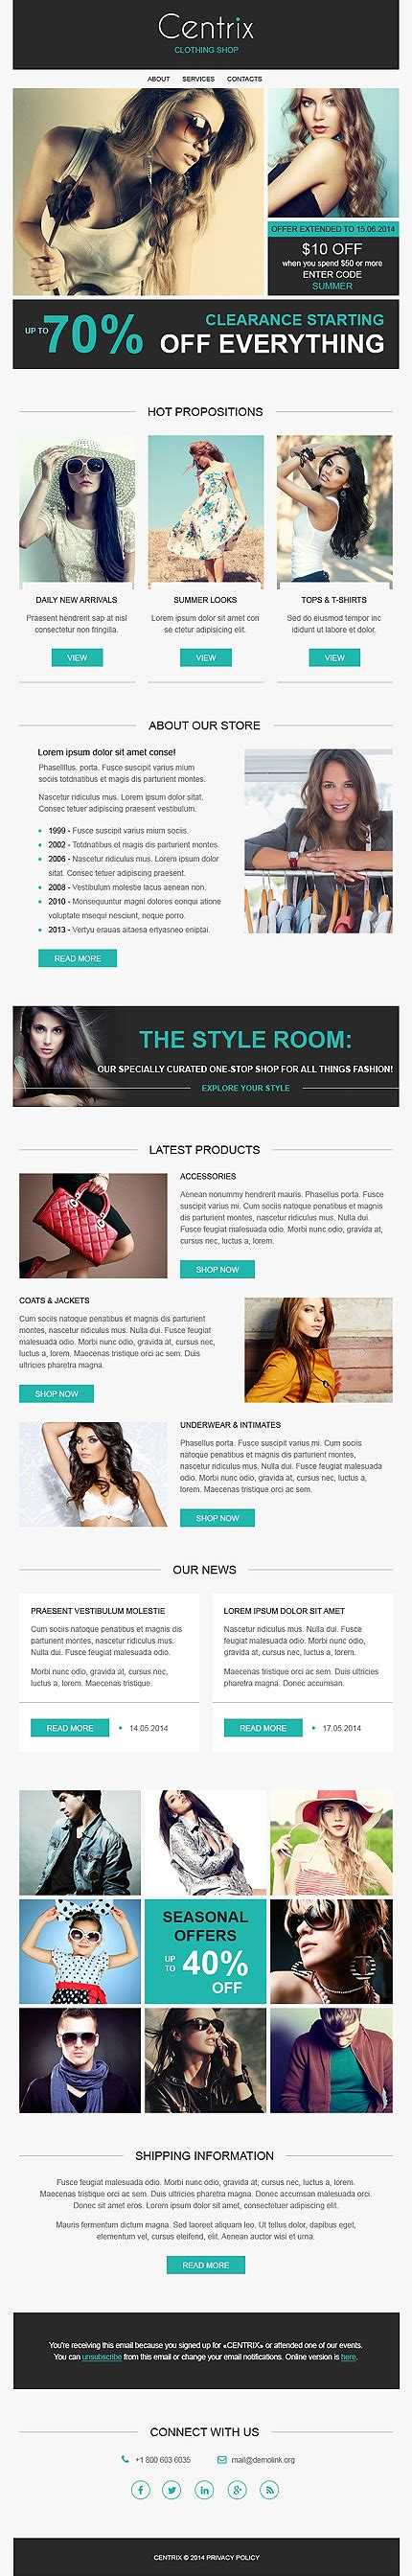 responsive newsletter template responsive newsletter templates for effective email